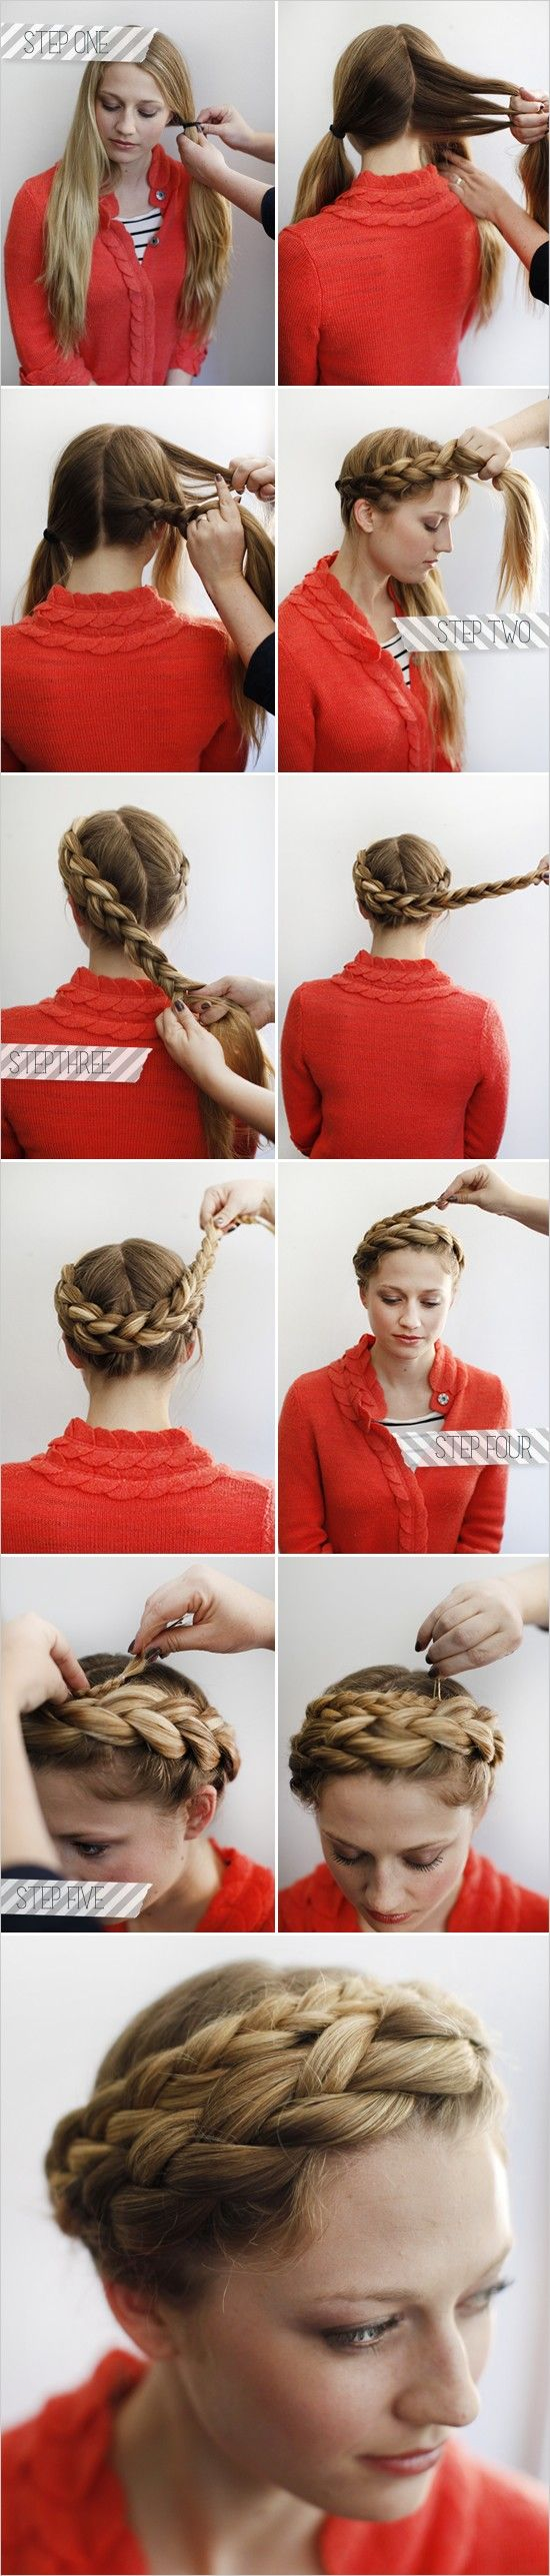 DIY braid halo